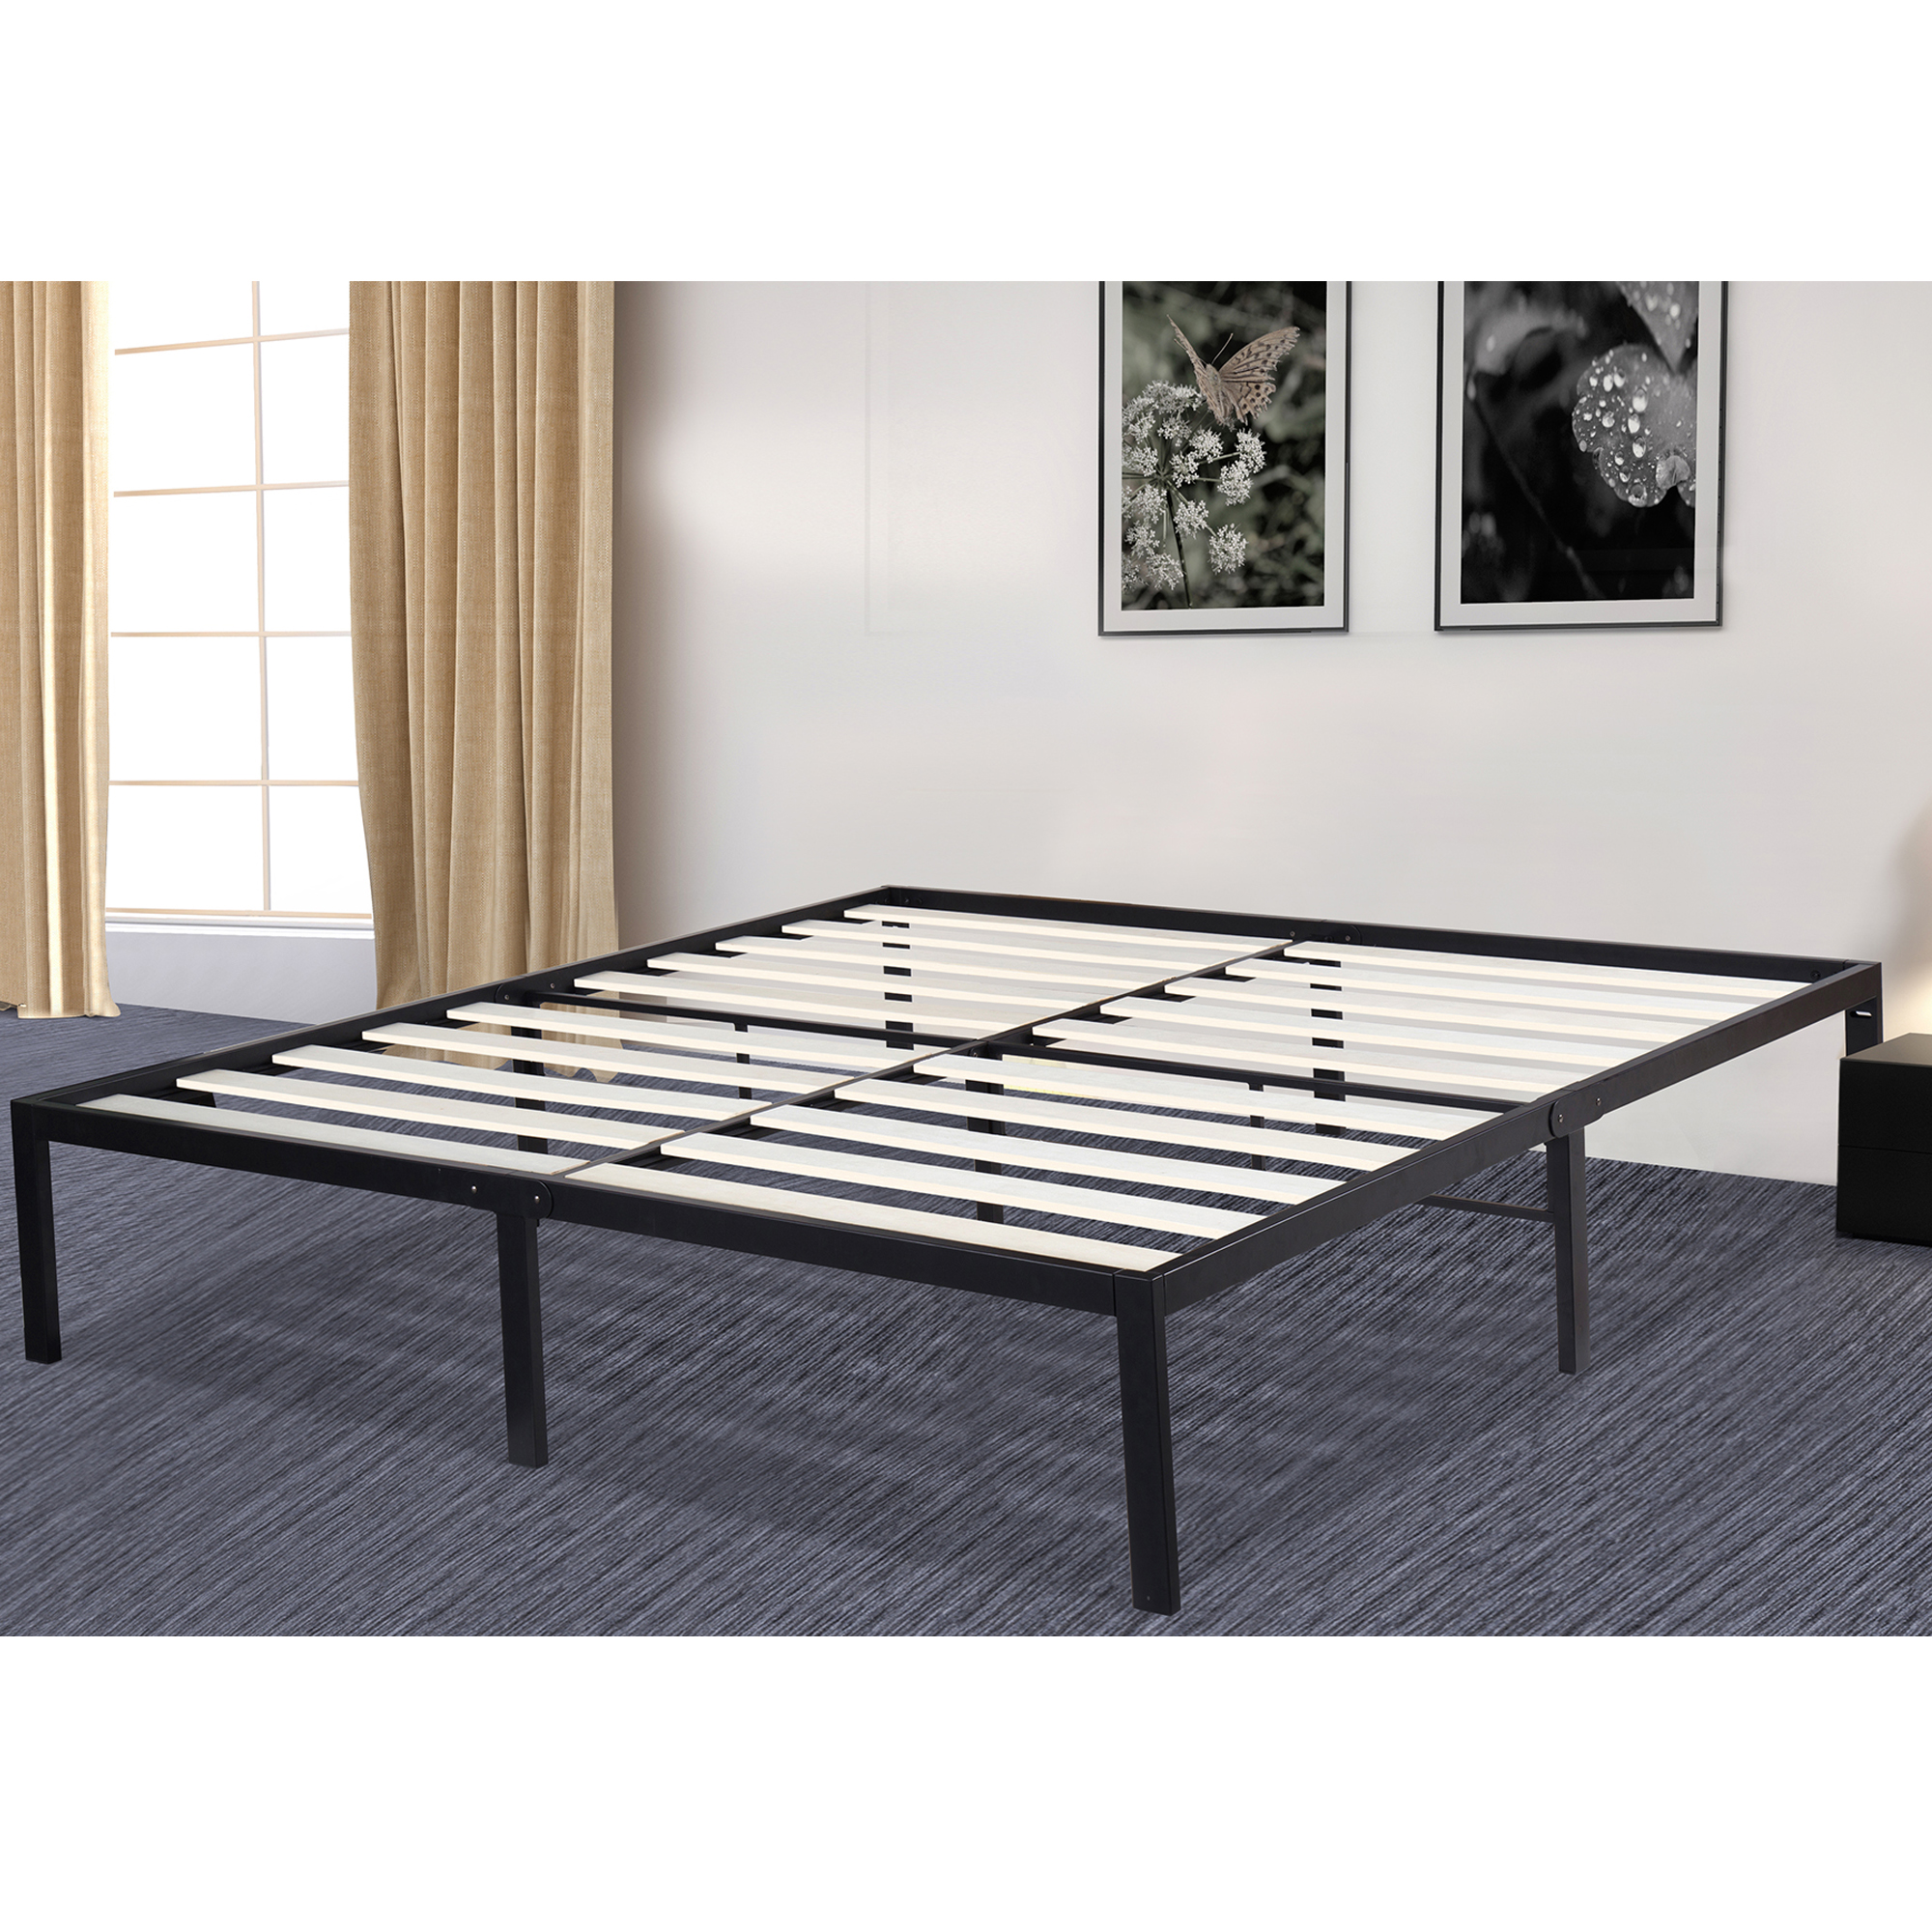 Spectacular GranRest Platform Metal Platform Bed Frame with Wood Slat Mattress Foundation Queen size GRW